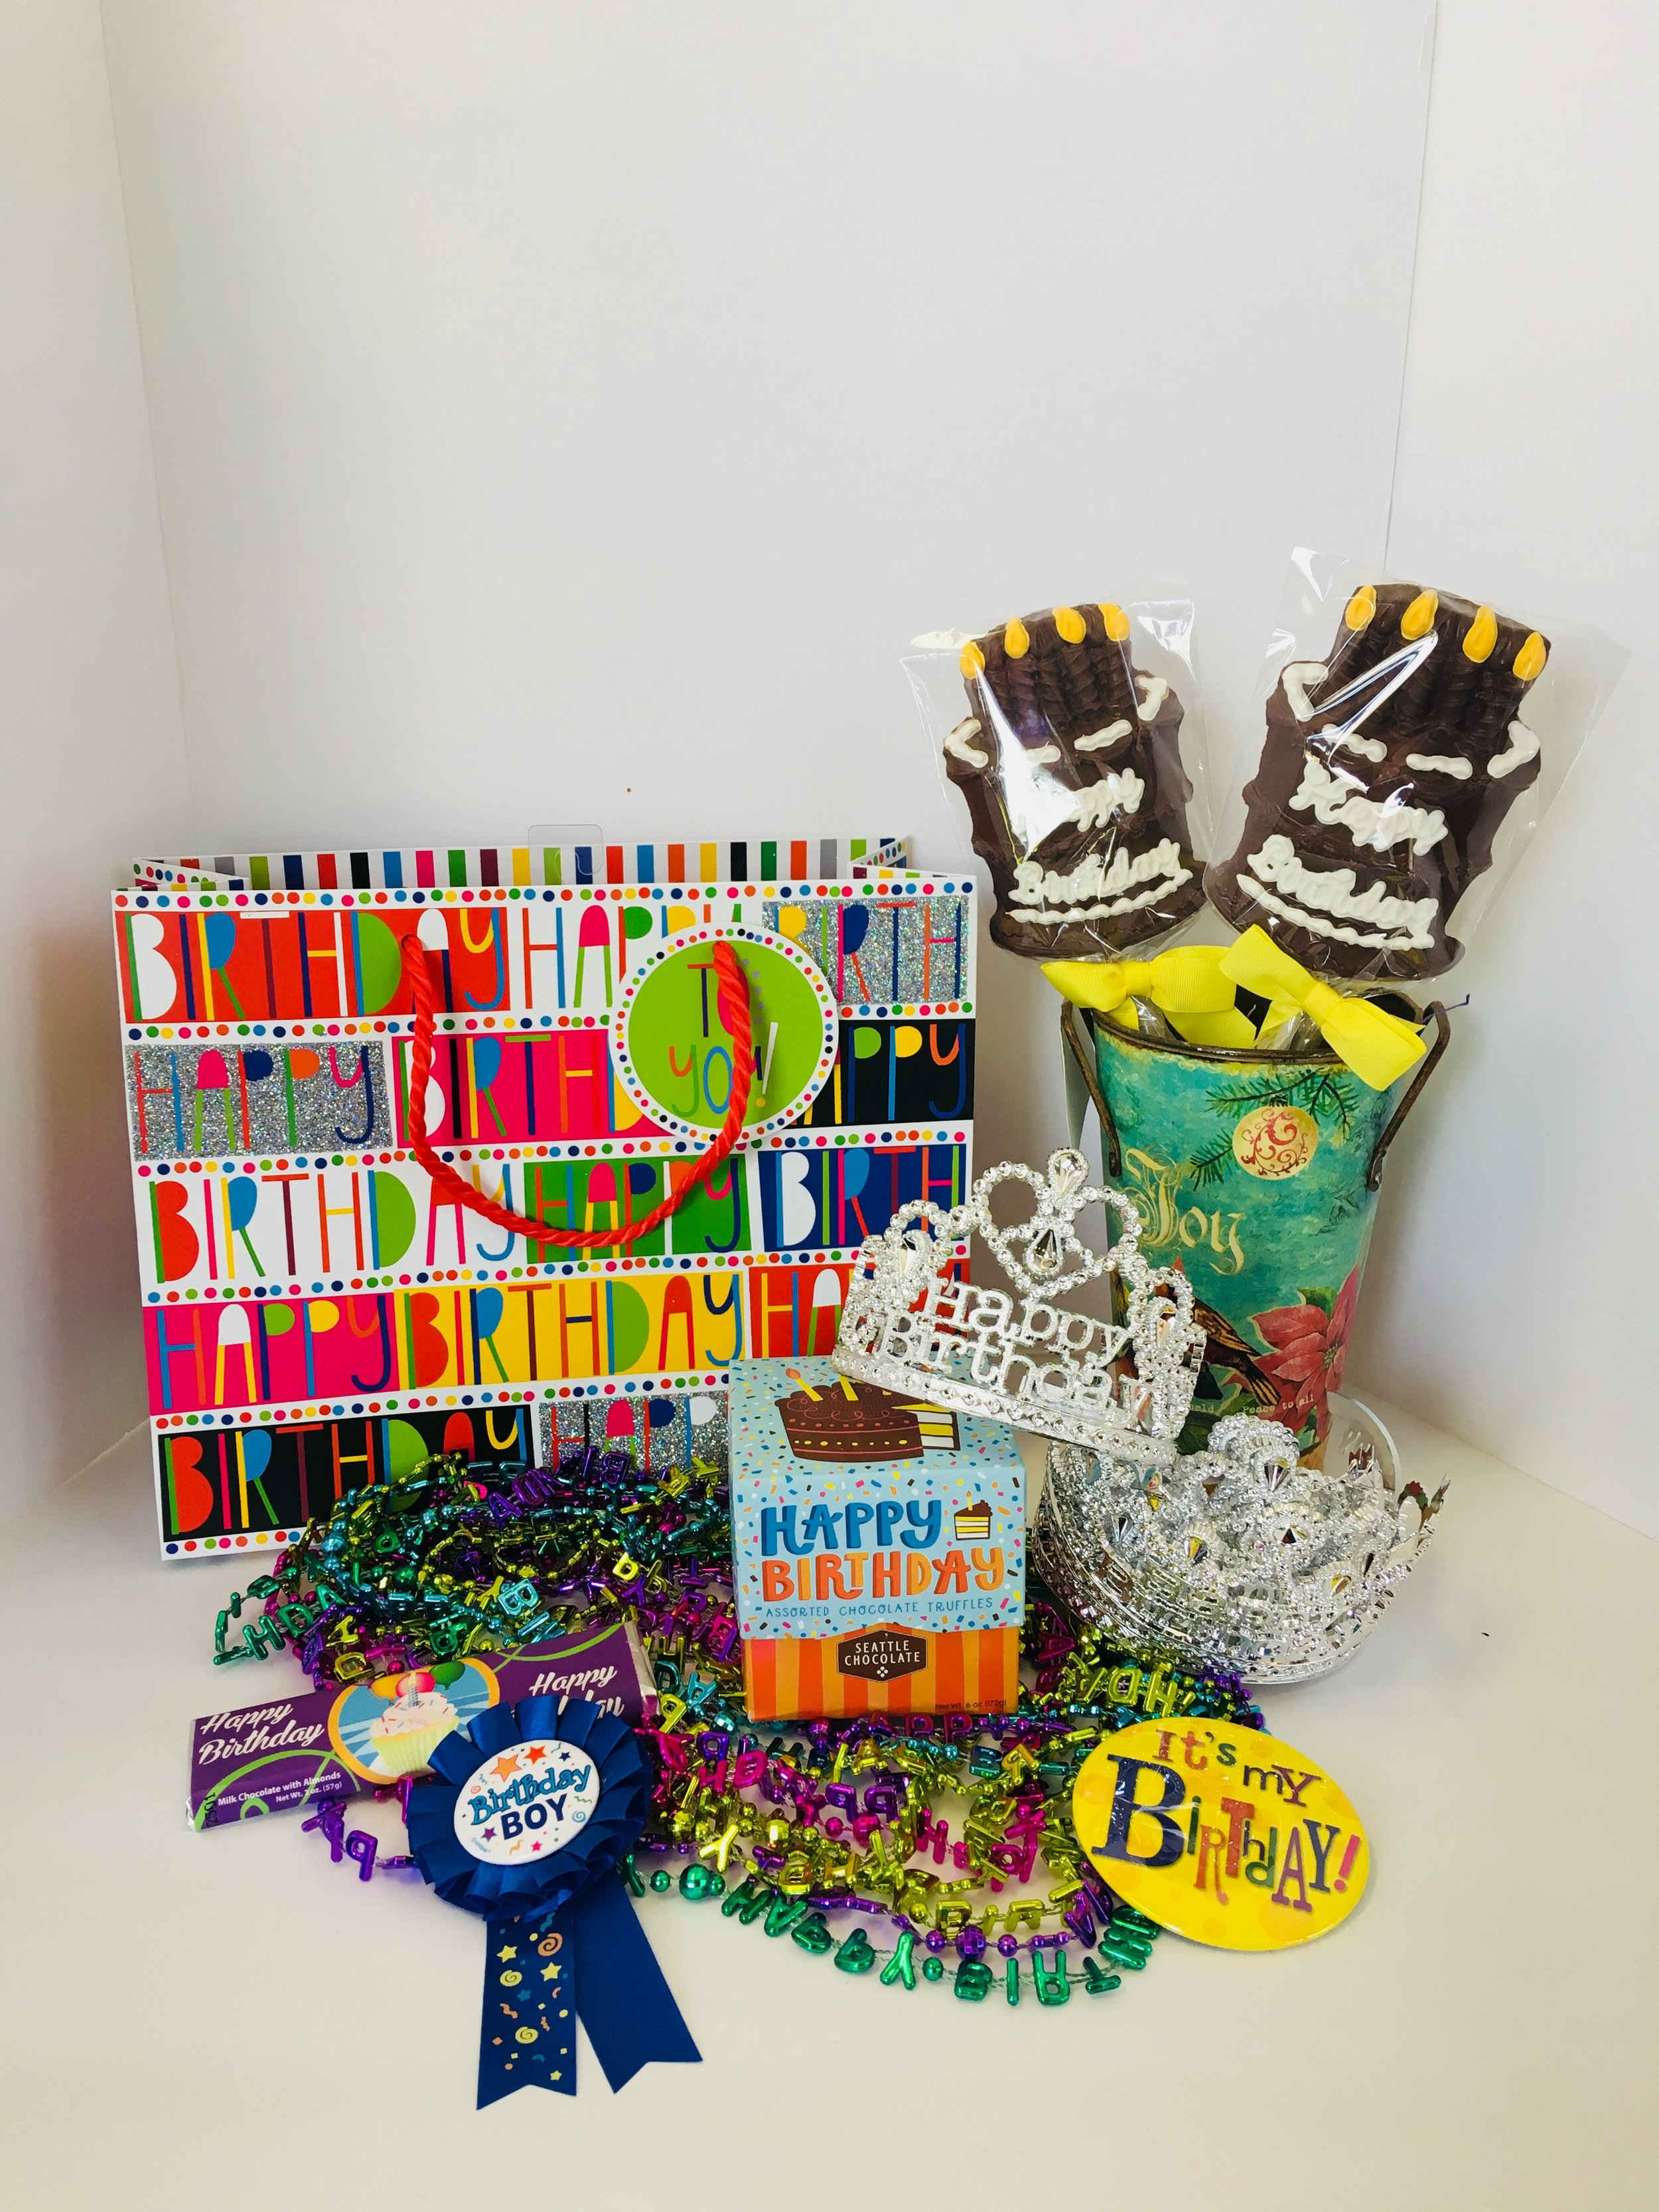 We can upgrade any gift with tons of birthday treats!